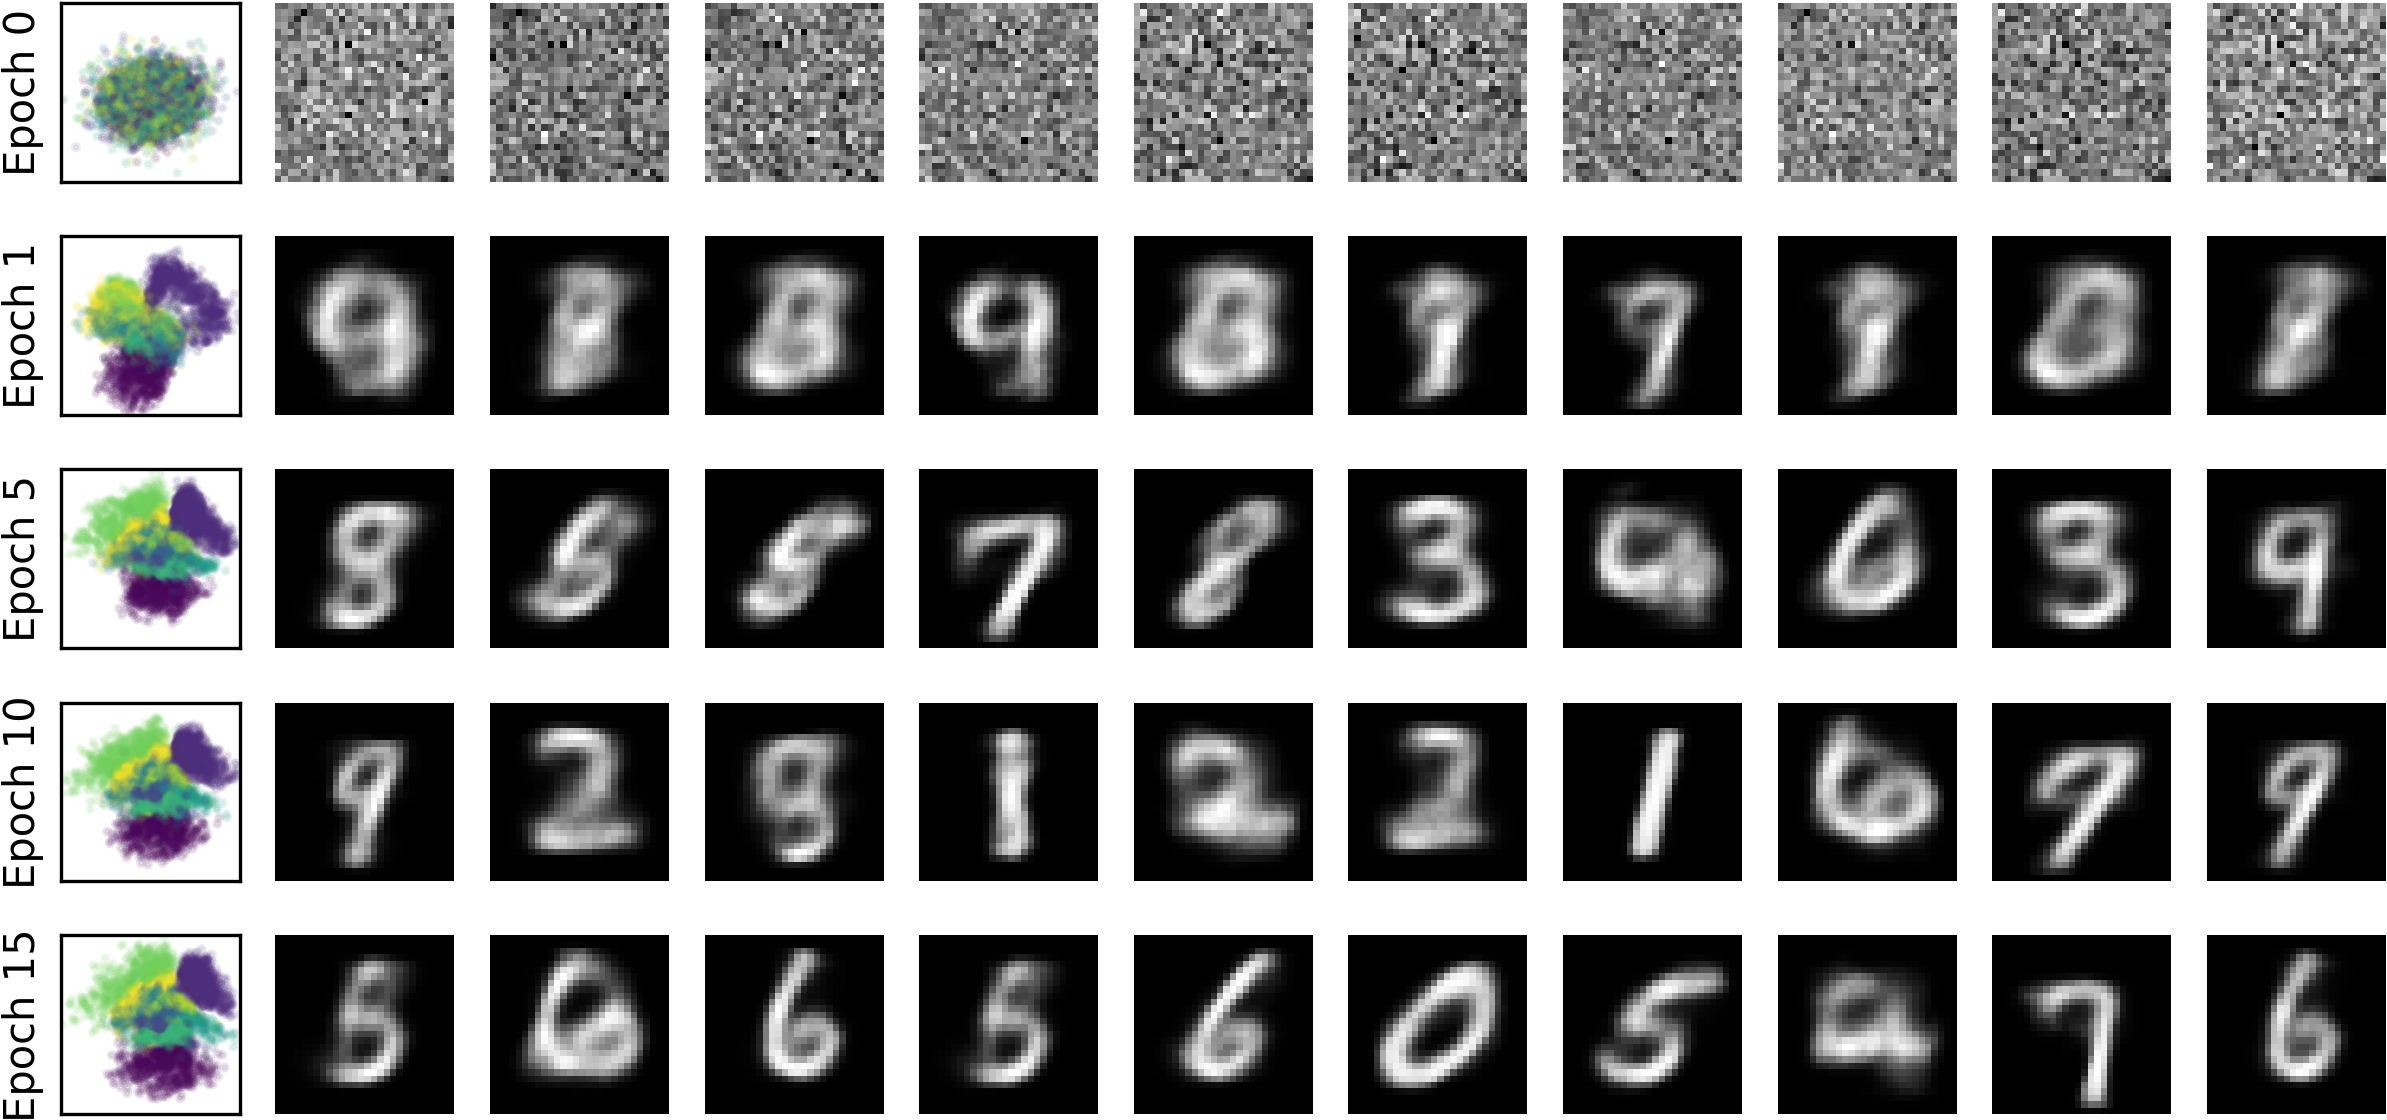 MNIST samples and latent space of the VAE.